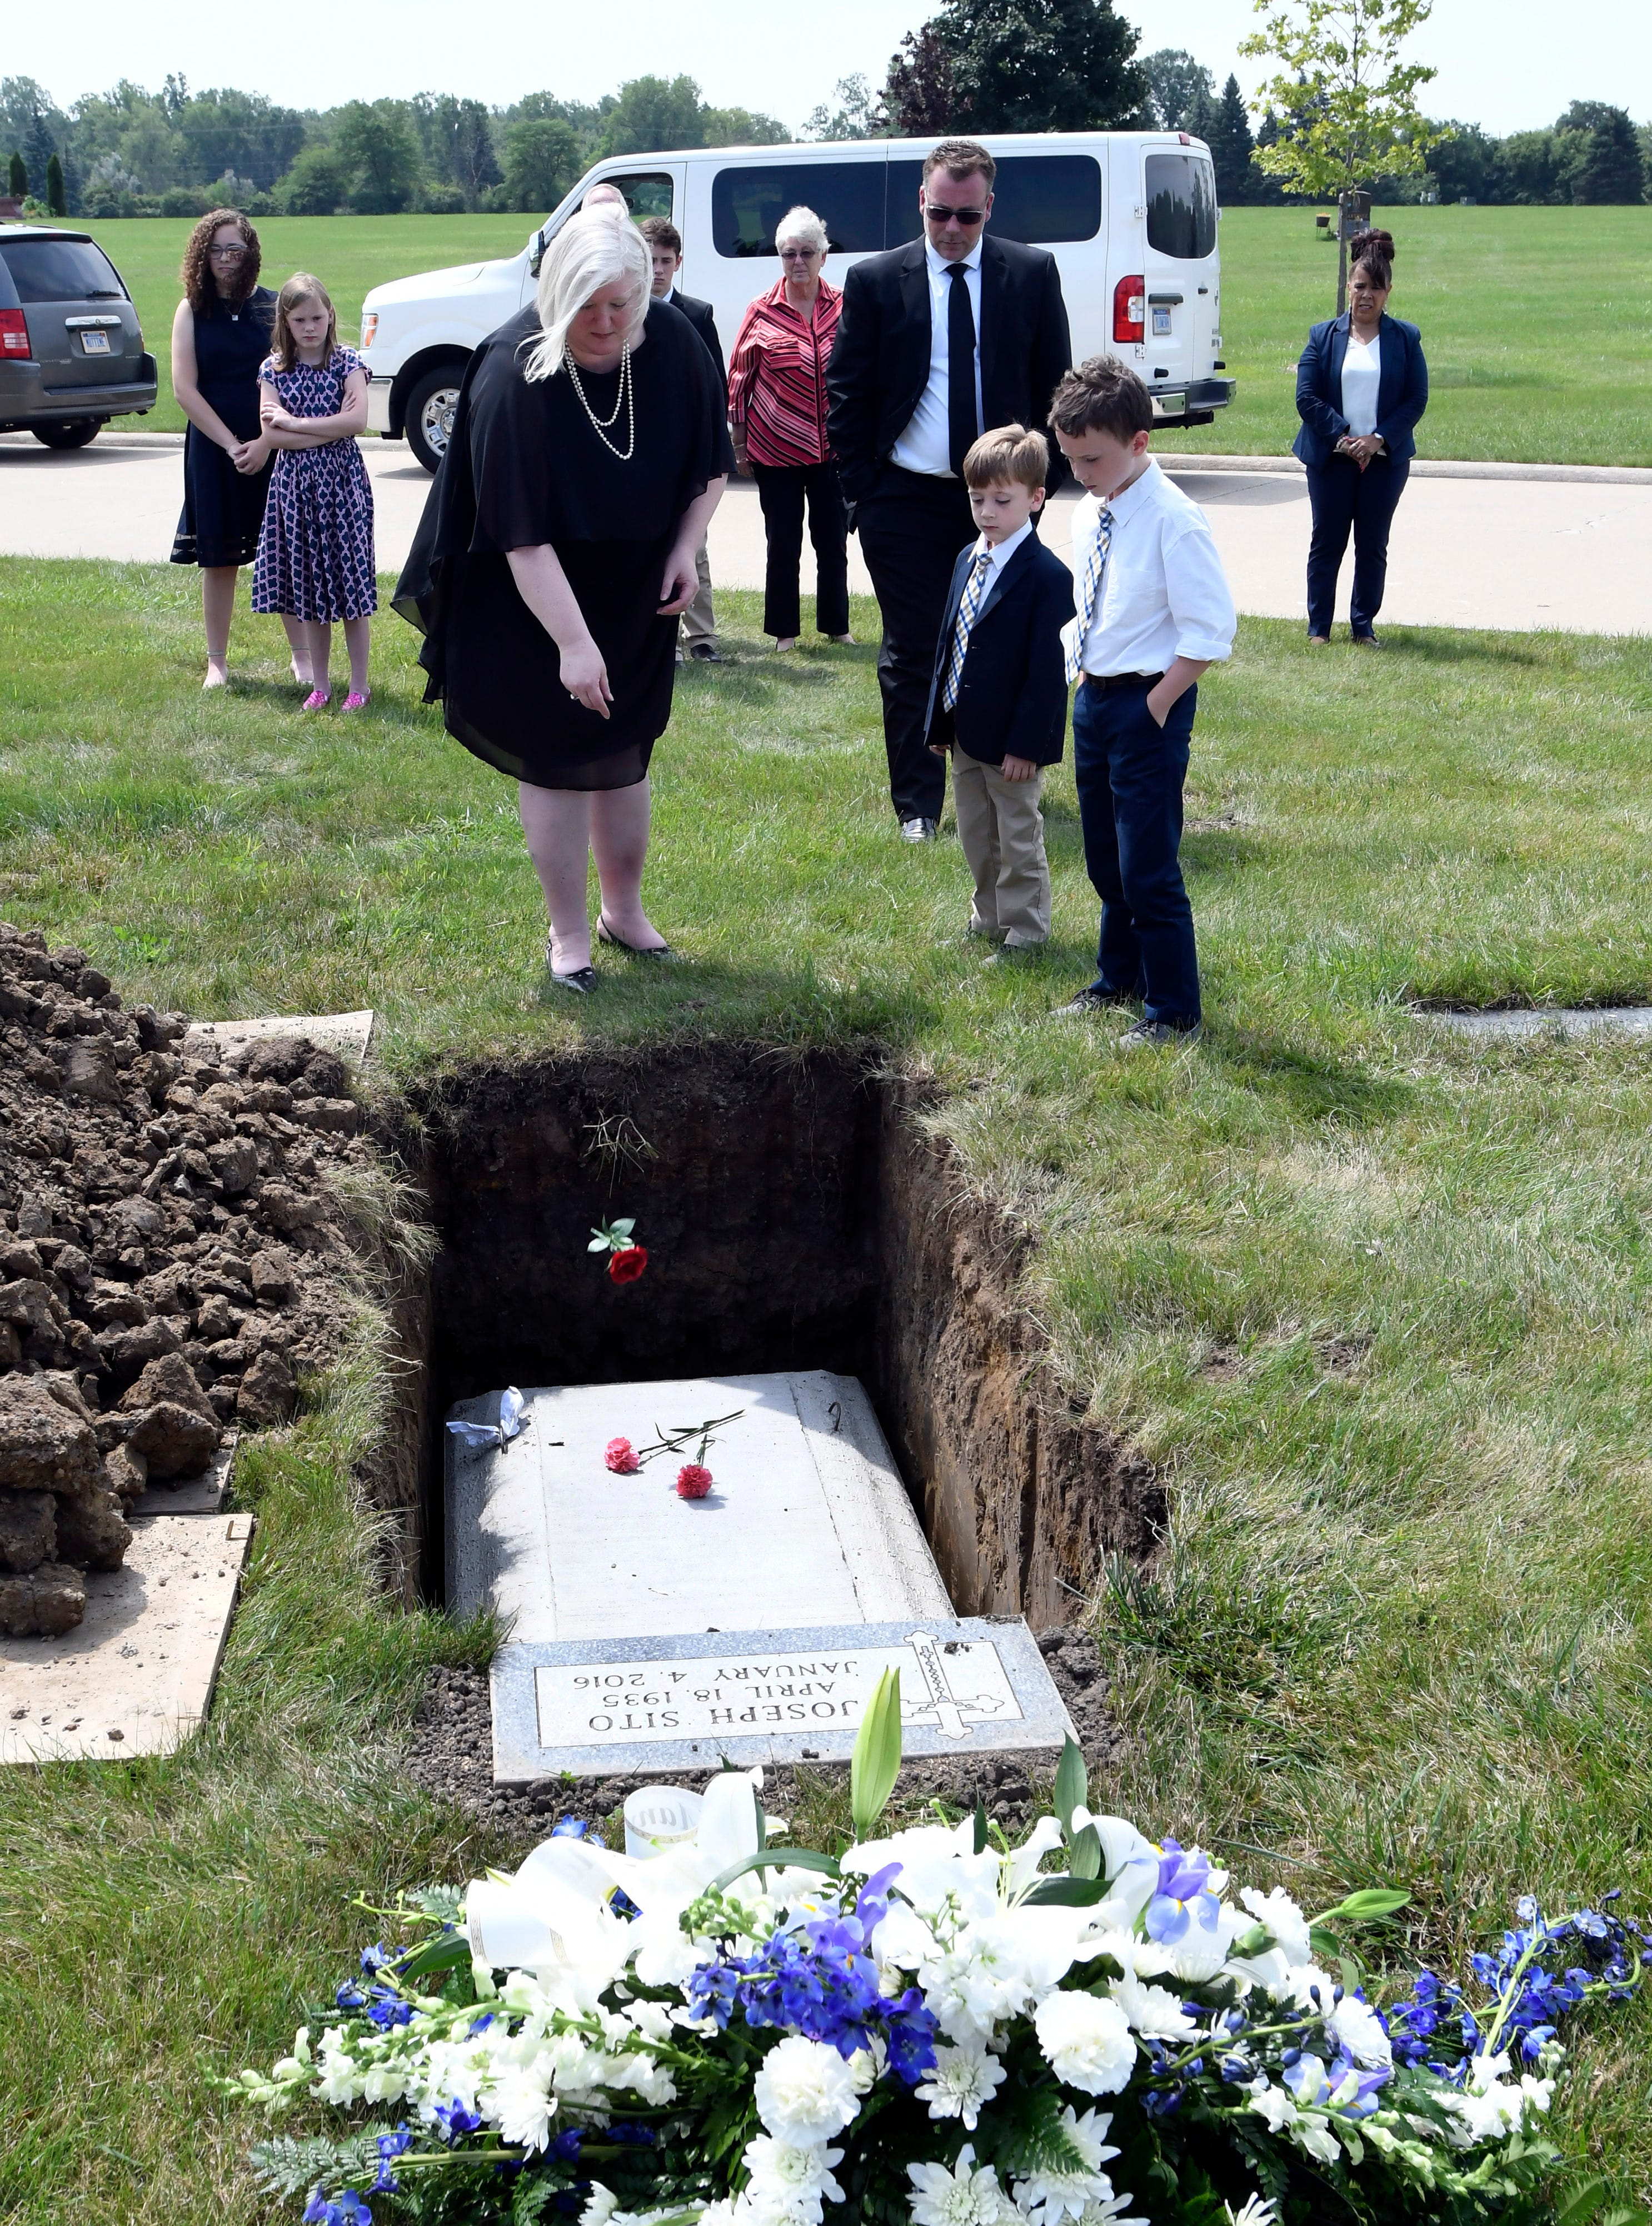 Tiffany Brocker of Detroit, left, is surrounded by family as she tosses a flower onto the casket of Gordon King.